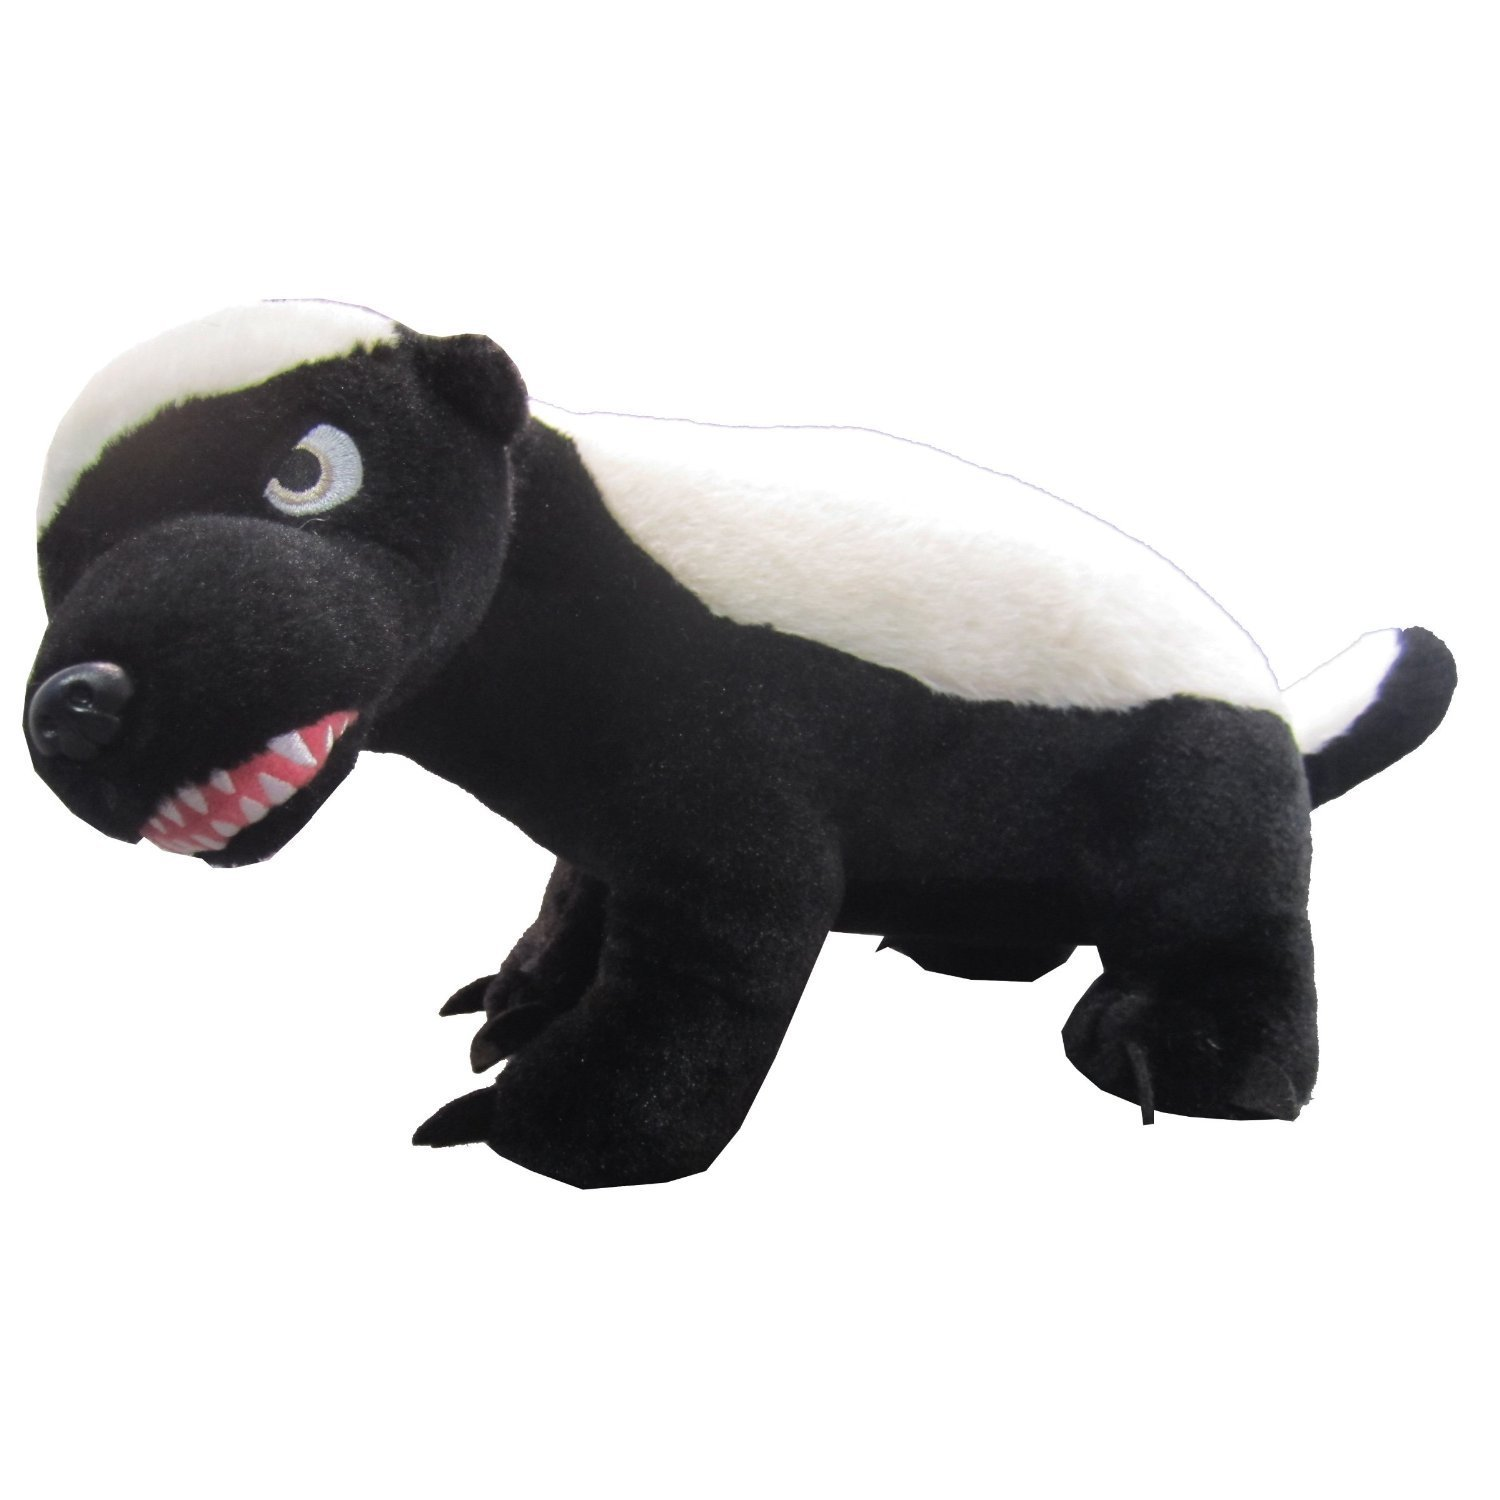 Honey Badger Clip-On Plush, R Rated